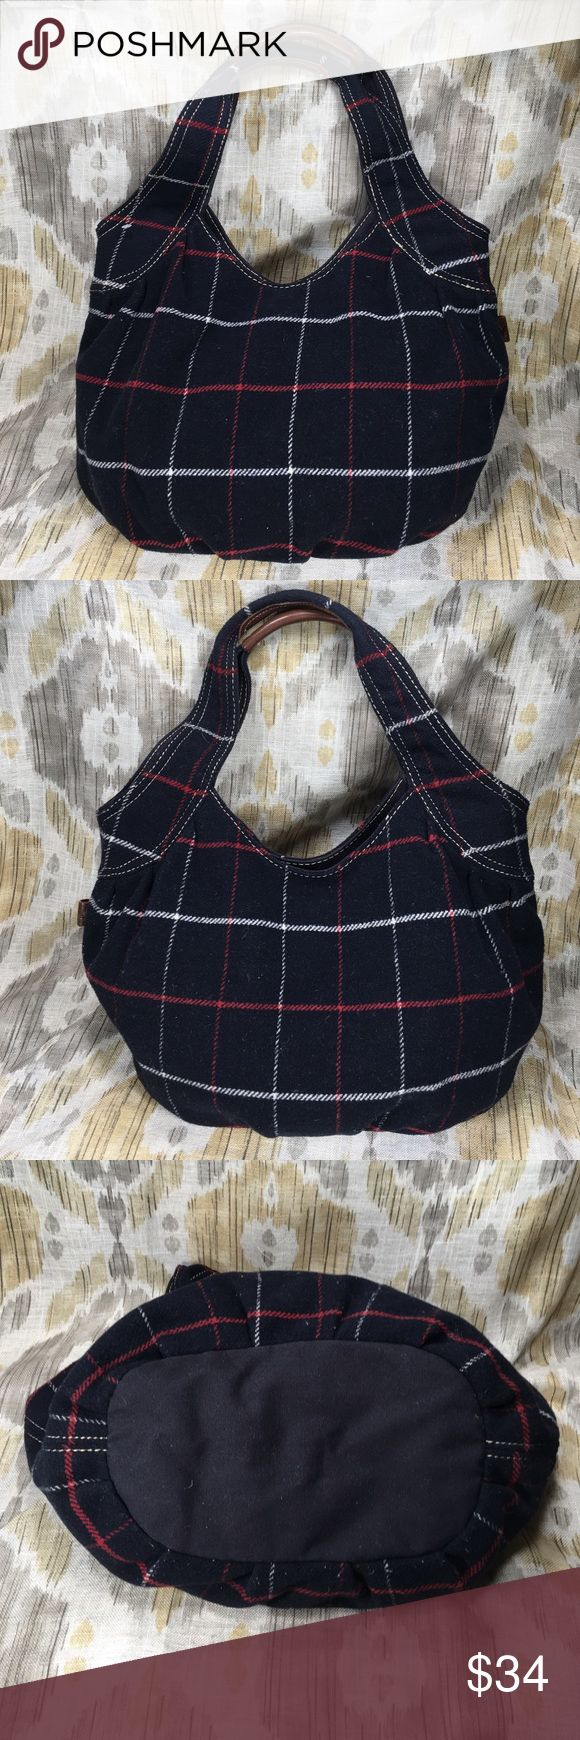 """American Eagle Outfitters Handbag Navy blue plaid. Handbag has zipper pocket on side wall. Opposite side wall is a double slit pockets. Double straps. No damage or stains in excellent condition. Measures 11""""H X 17.5""""W X 6""""W. Strap drop measures 11"""". Bags Hobos"""